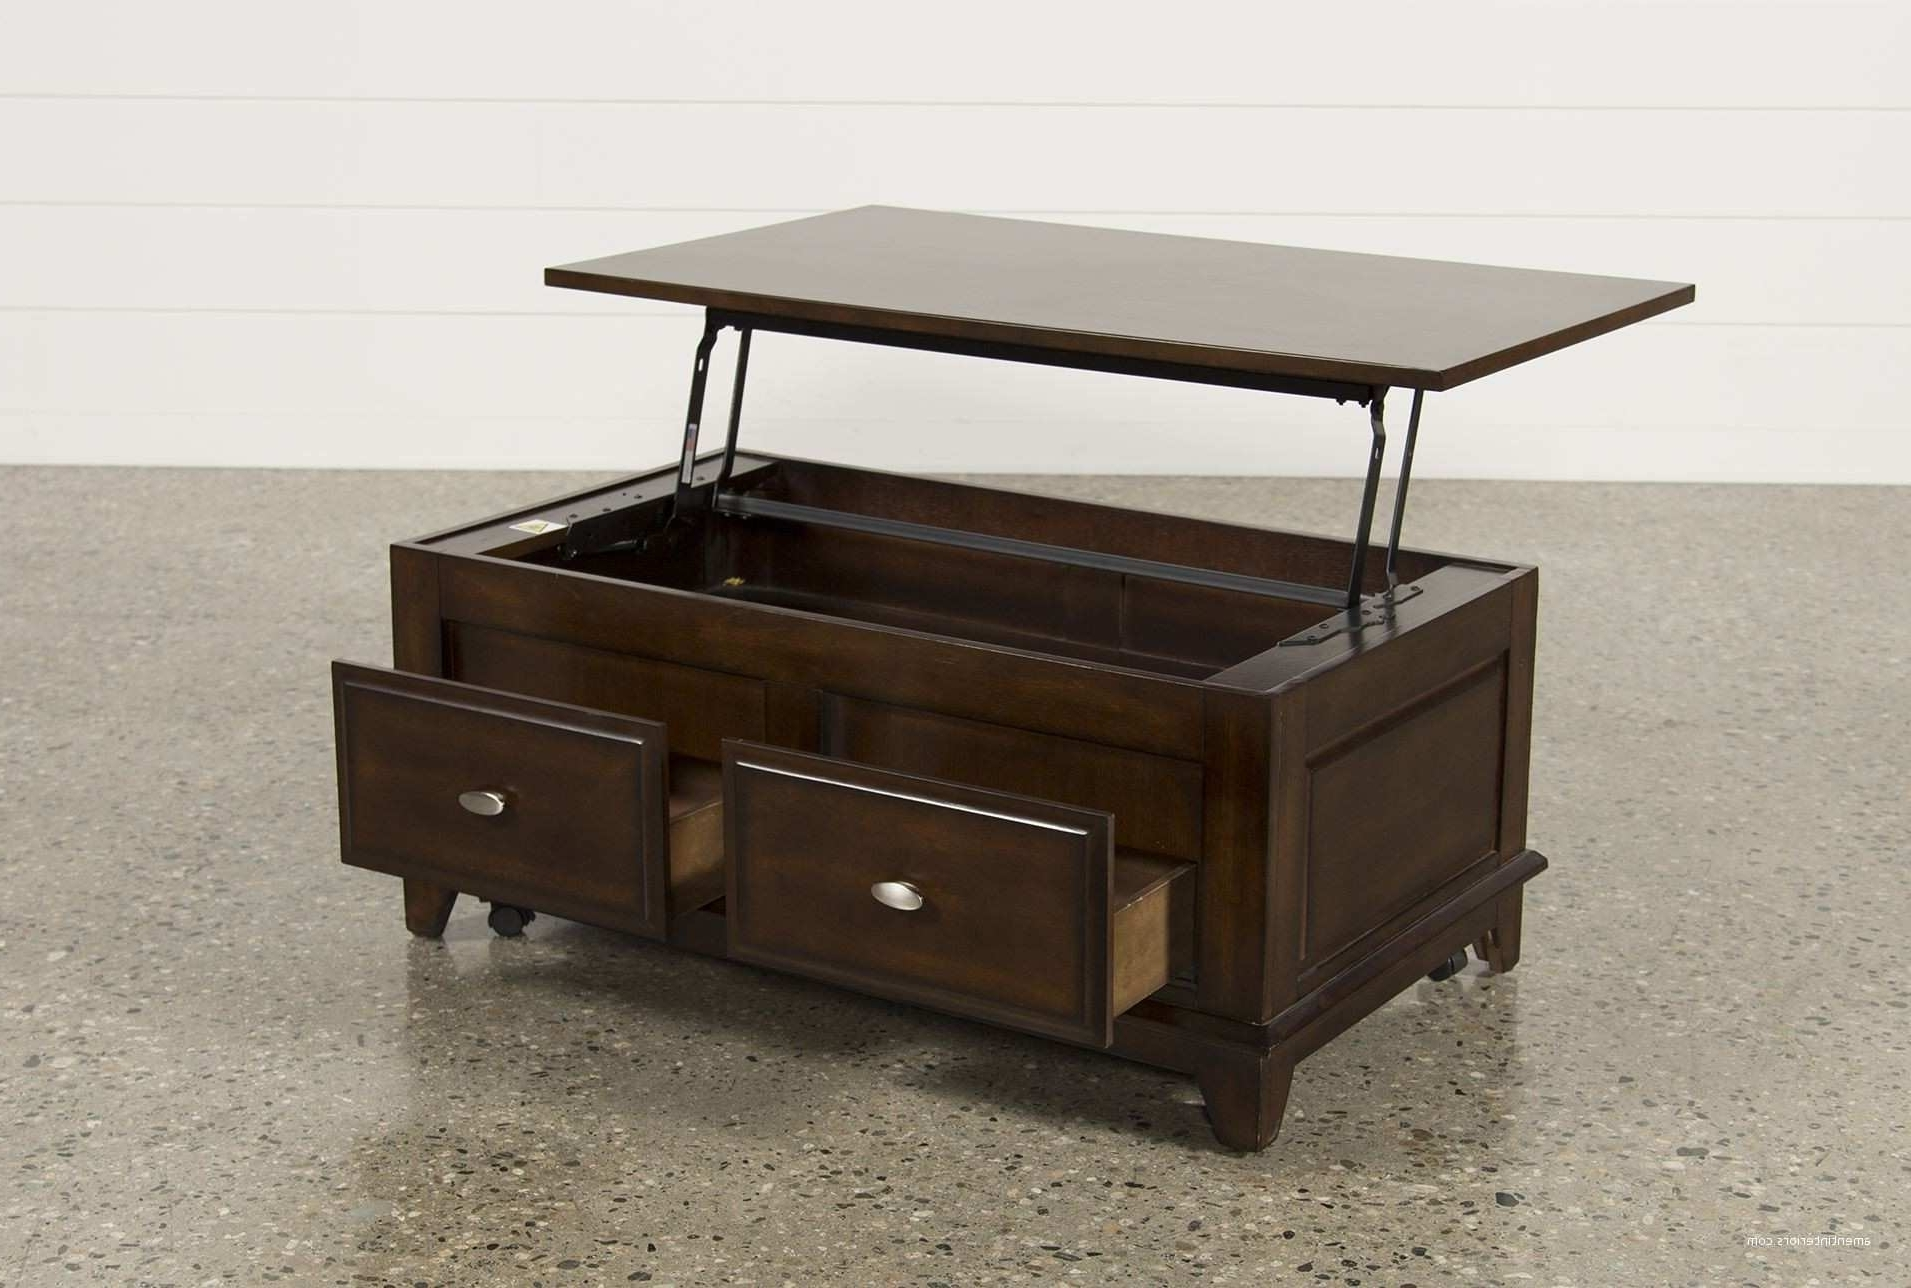 2017 Jaxon Grey Lift Top Cocktail Tables Regarding Living Spaces Coffee Table Lift Top – Coffee Table Design Ideas (View 1 of 20)